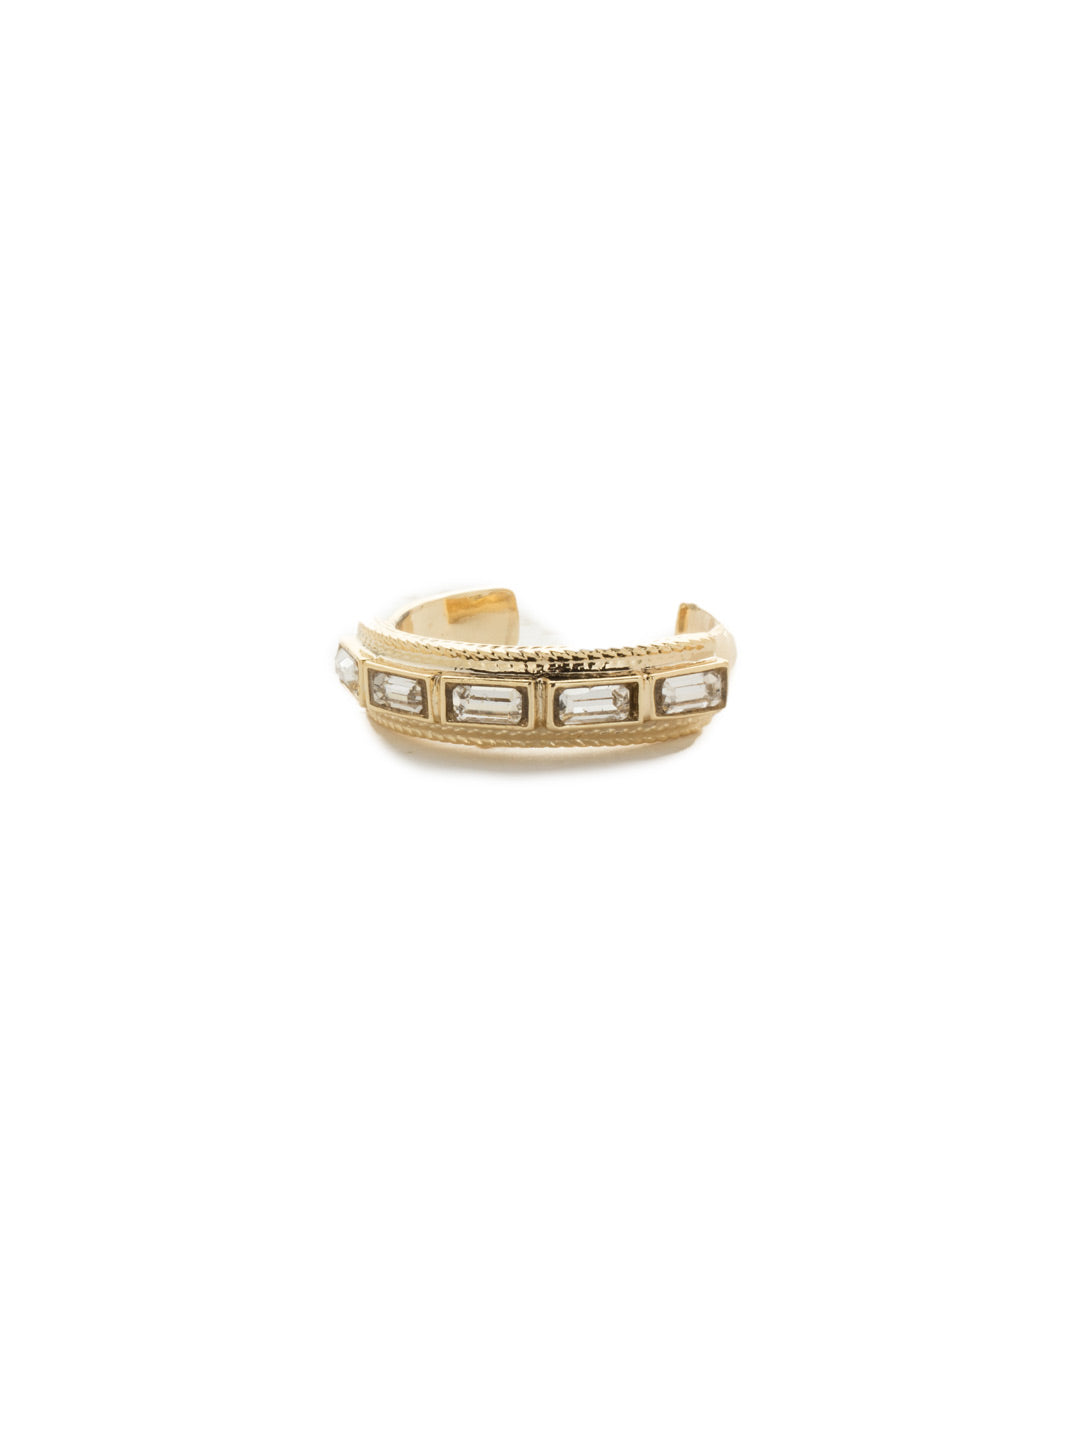 Circadian Crystal Band Ring - 4REK39BGCRY